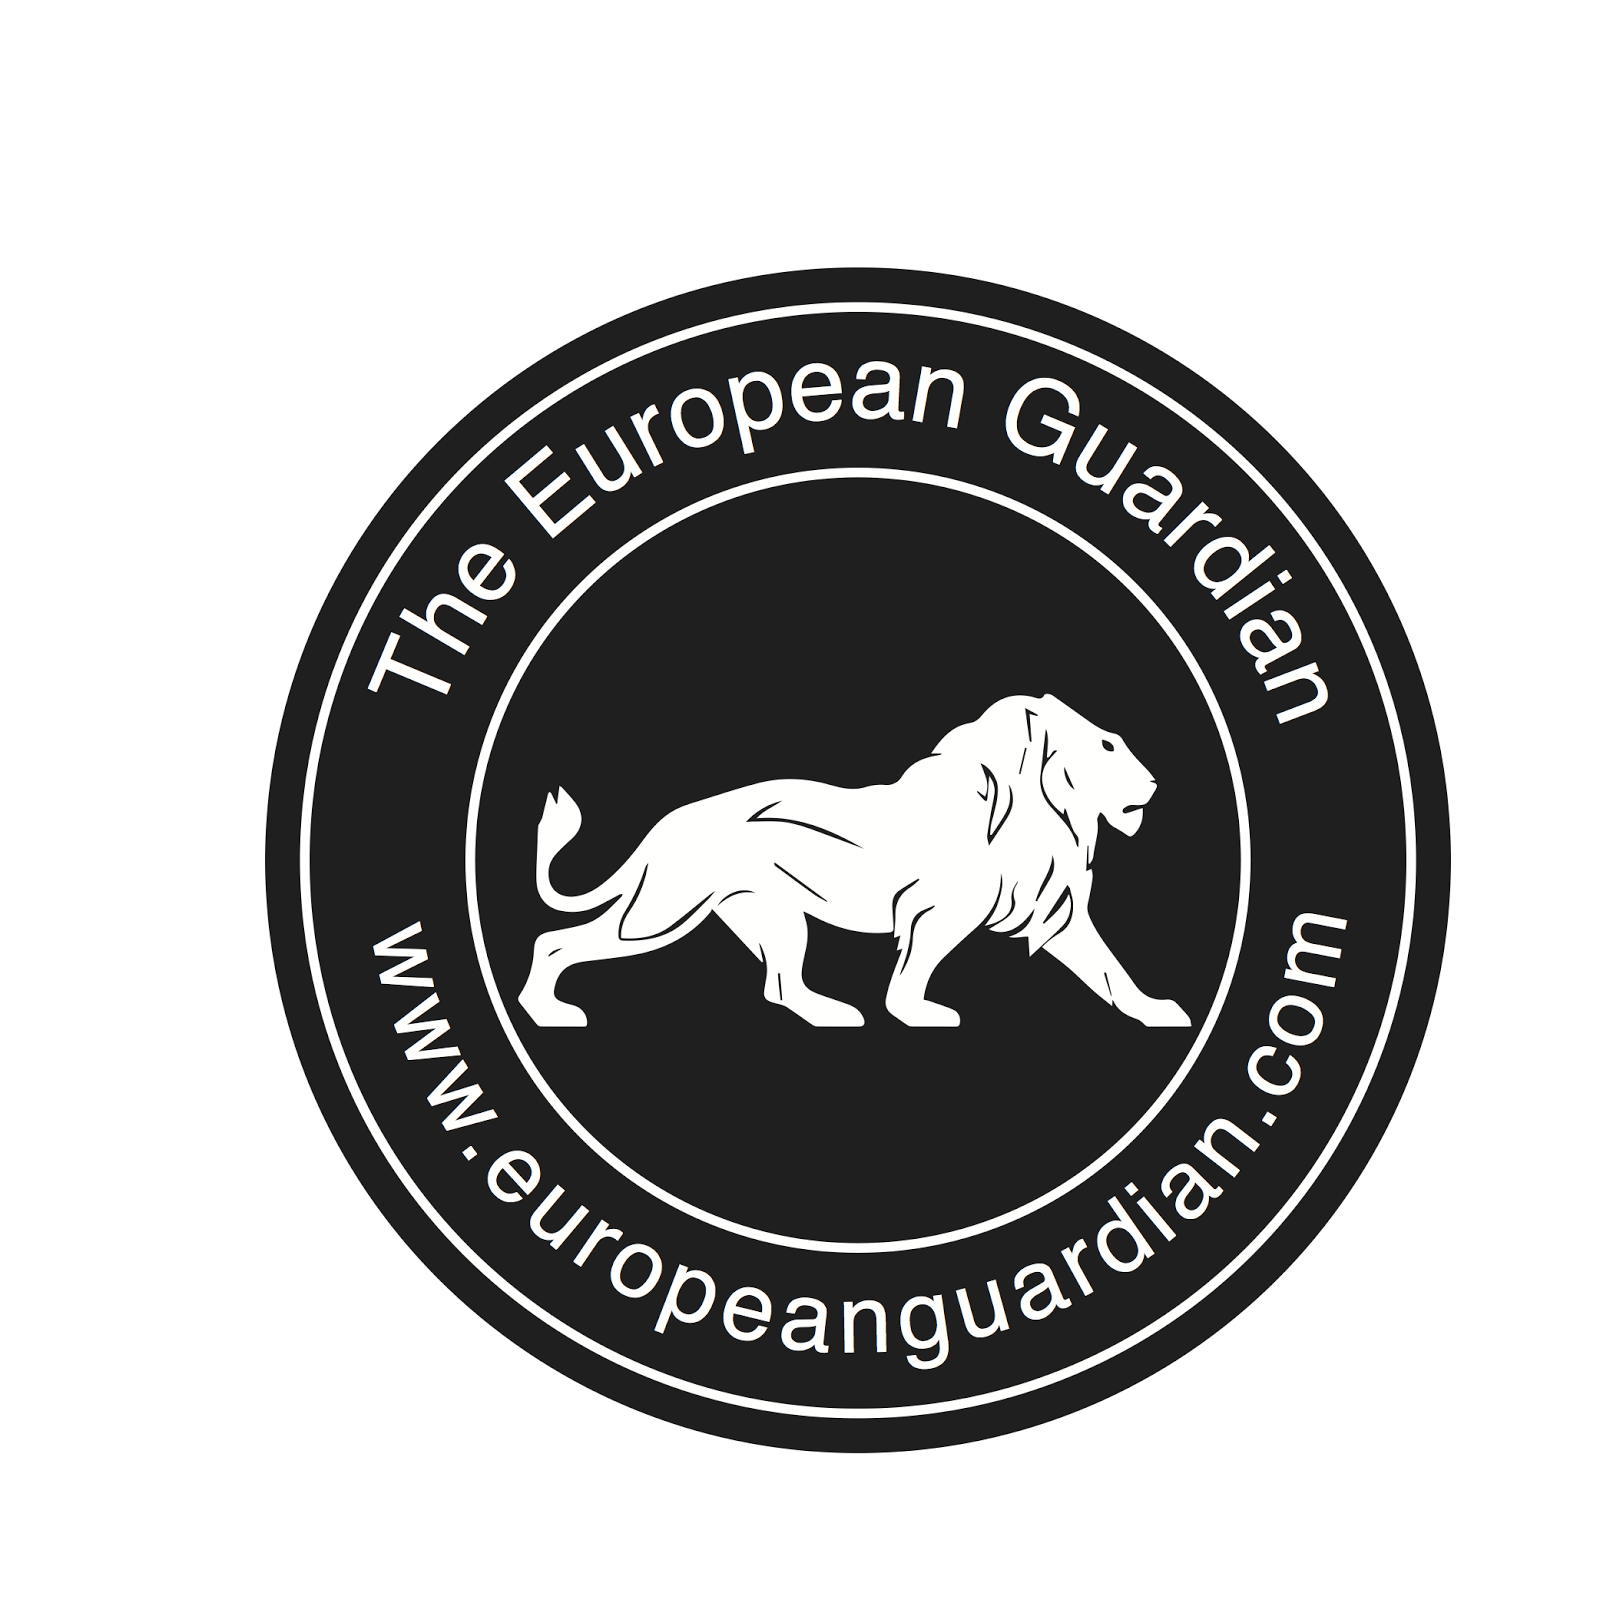 The European Guardian